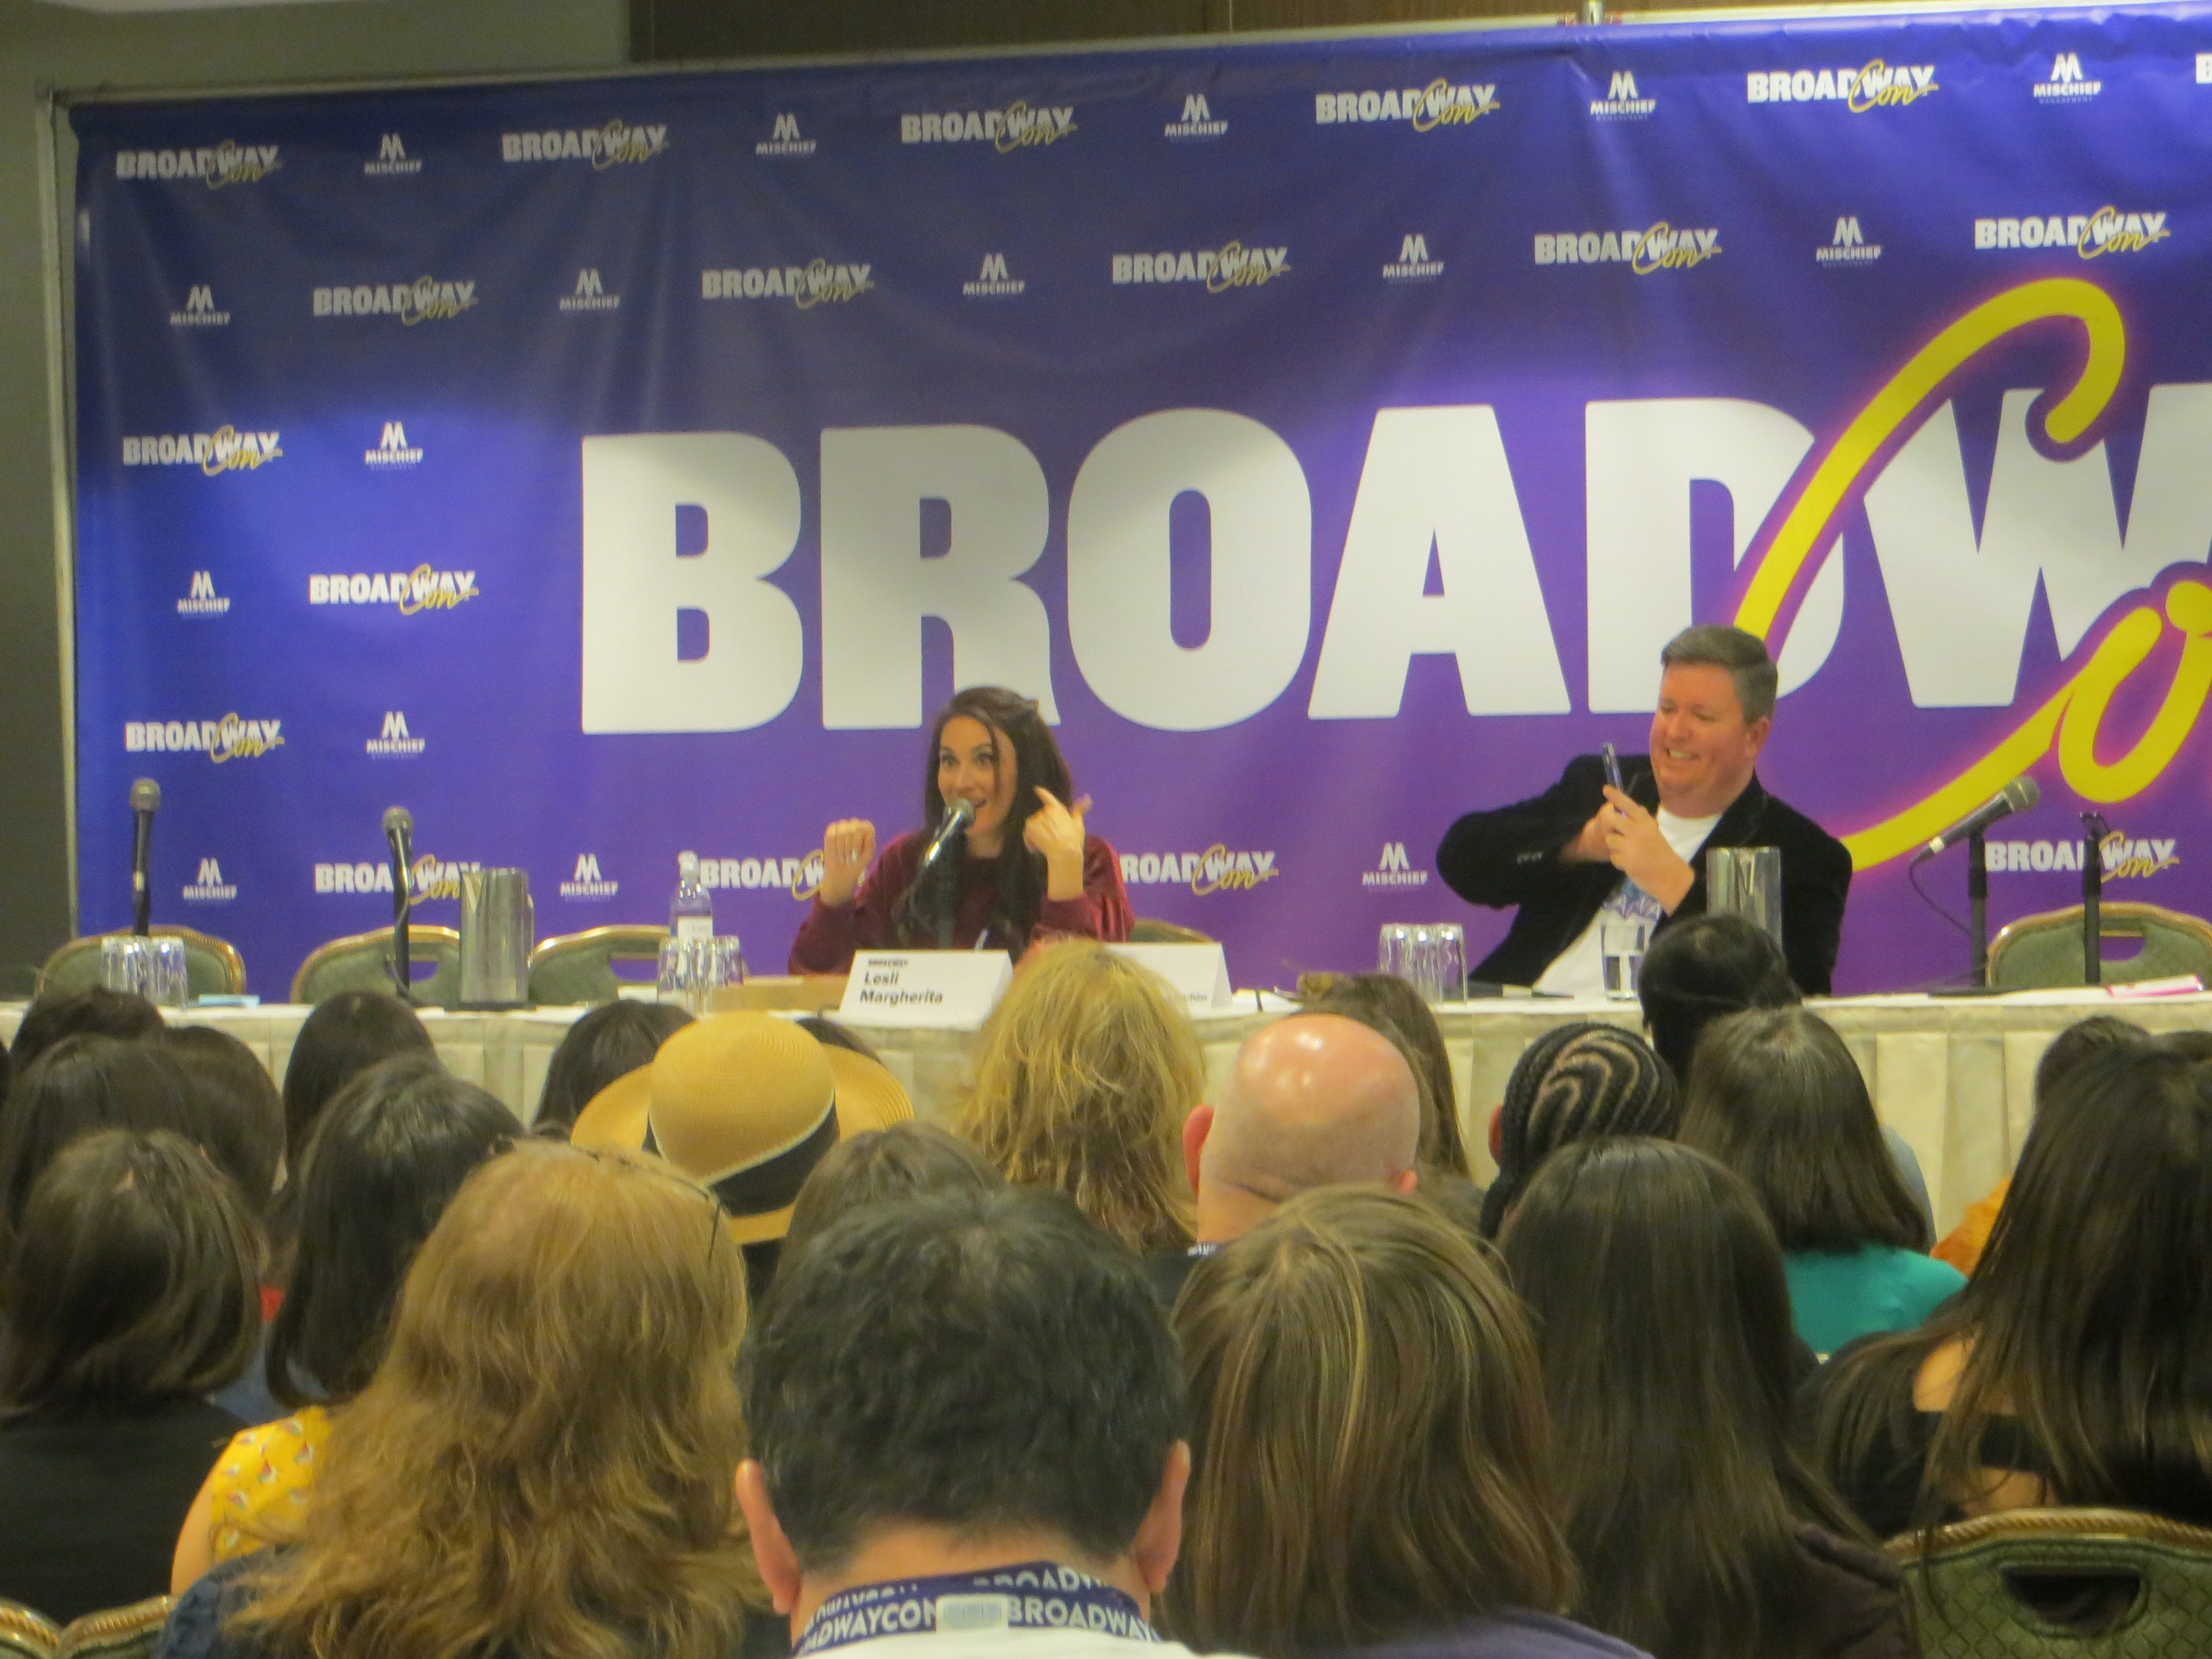 Lesli Margherita and Brian Reavey of Retreat to Broadway at BroadwayCon 2019, held Jan. 11 to 13, 2019, at the New York Hilton Midtown in Manhattan.